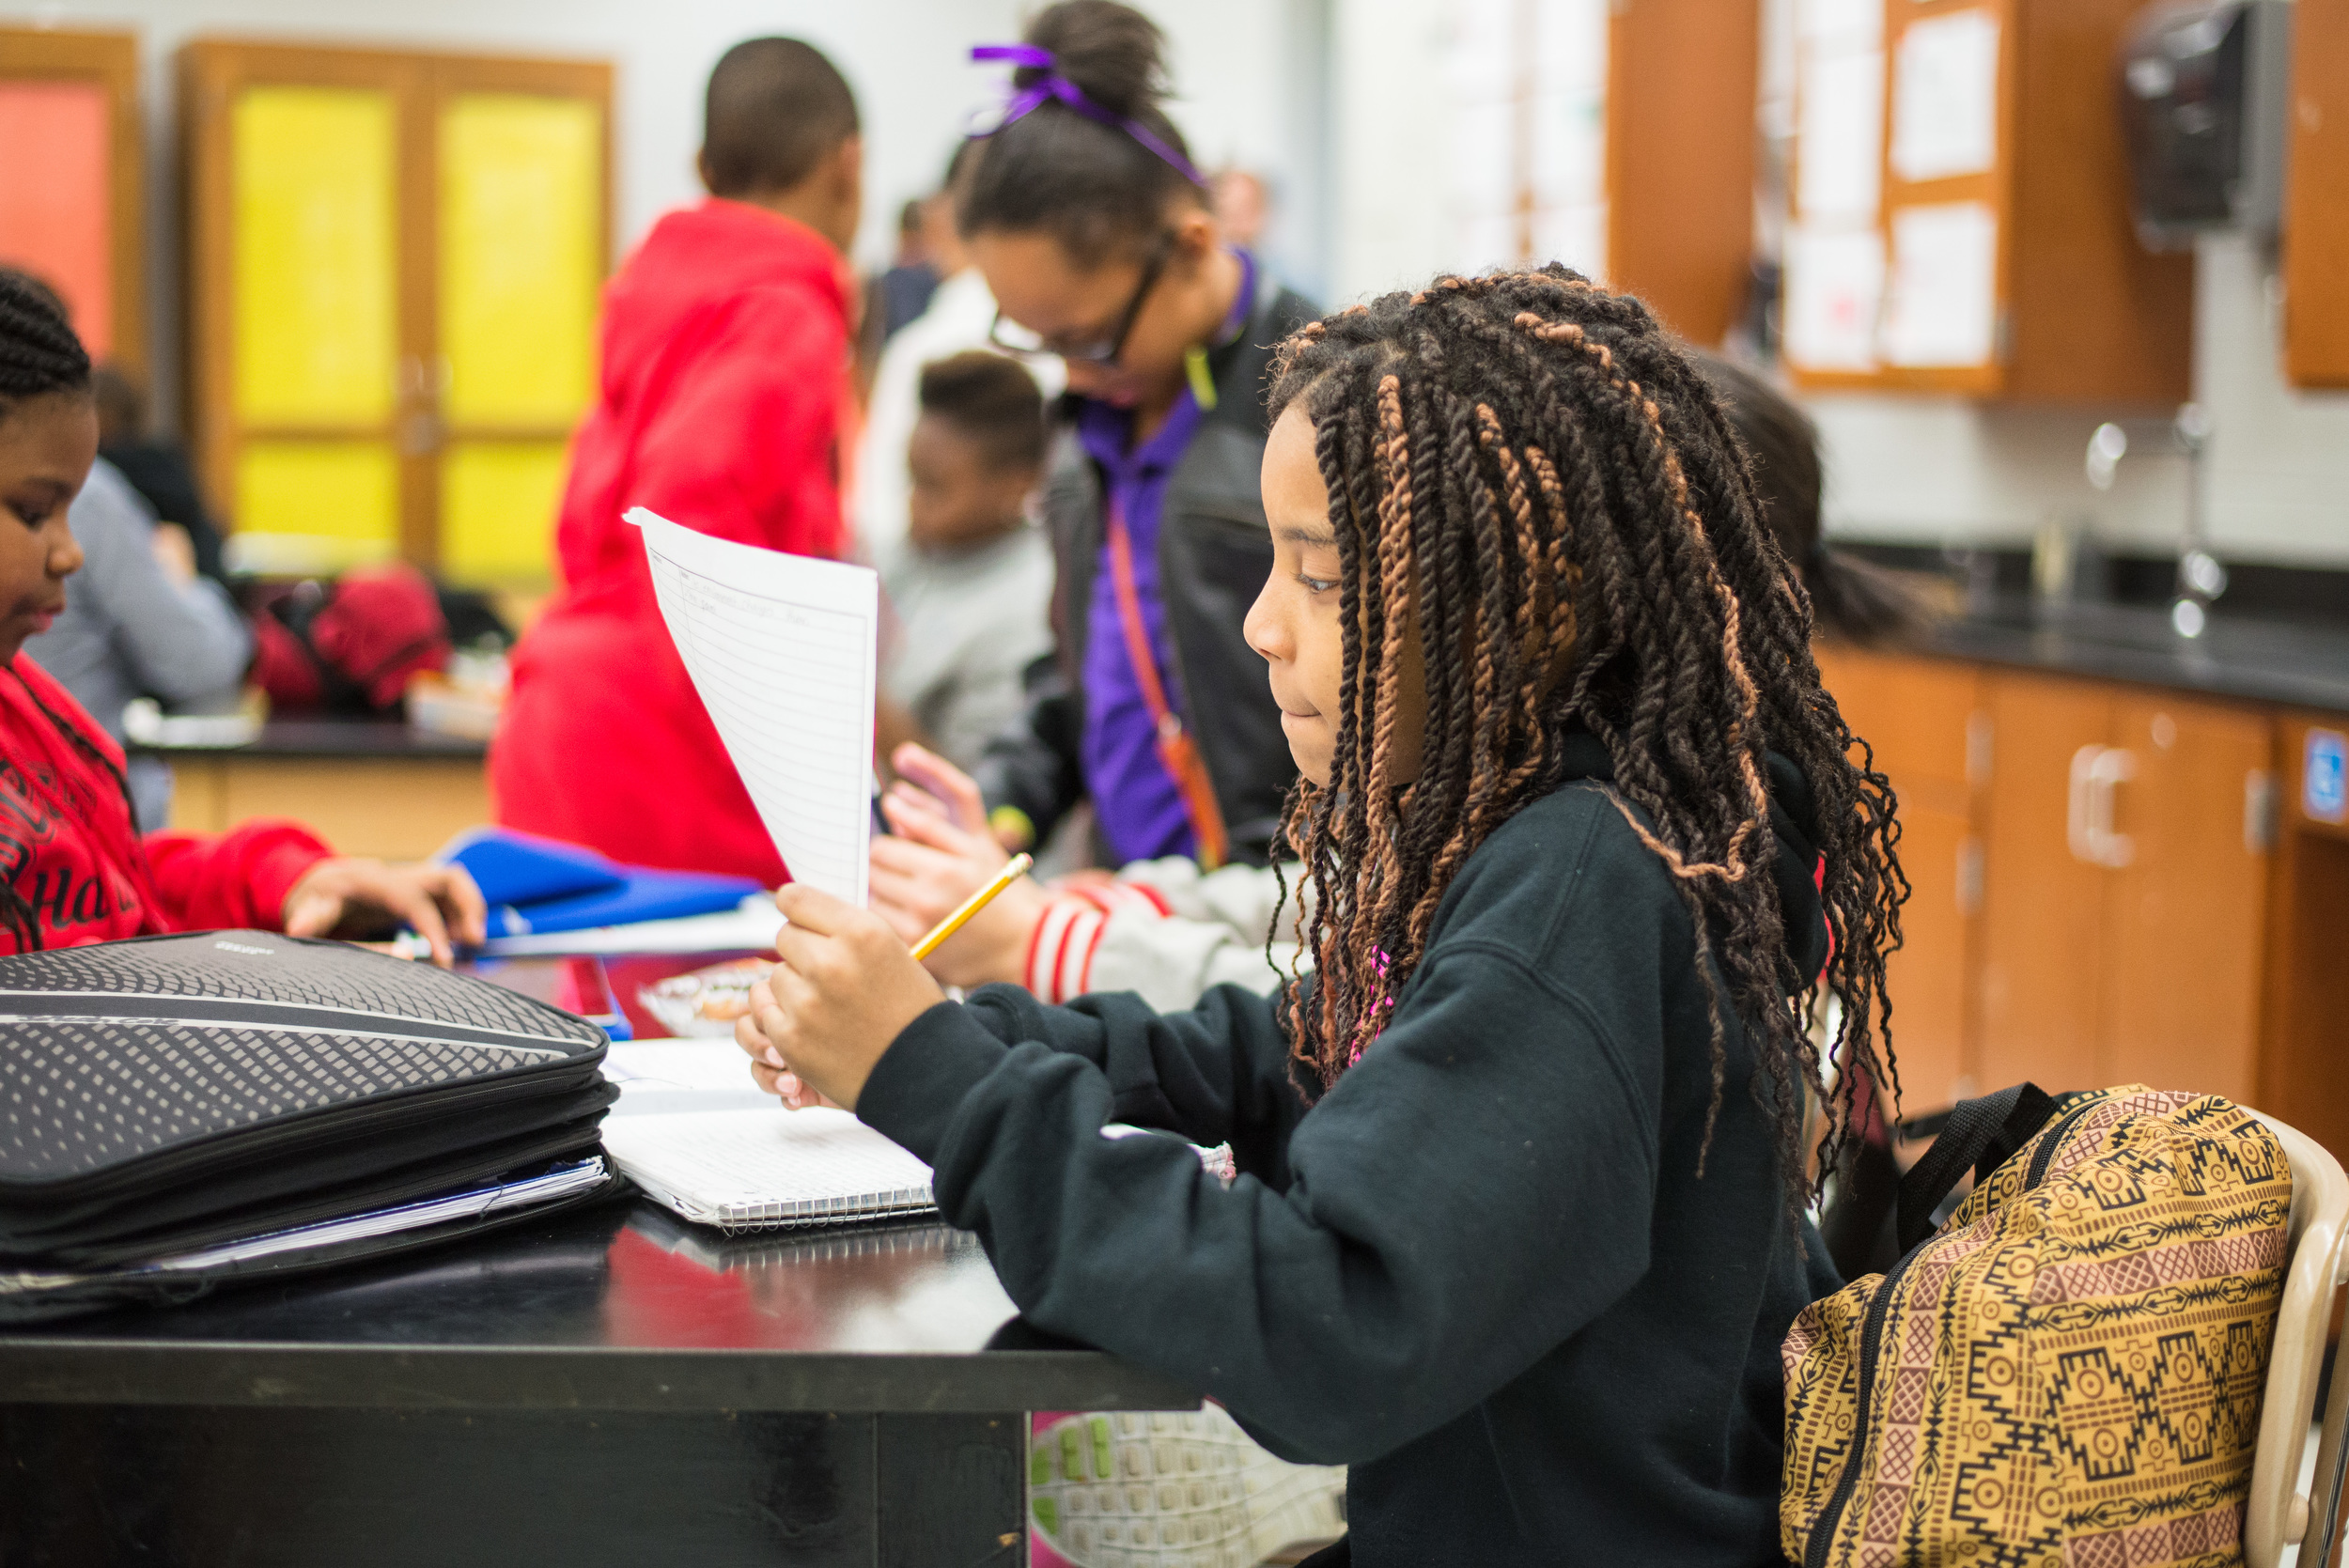 C.A.S.E. operates at two sites: Hopewell and DuPont Hadley, with a total of 30 students.